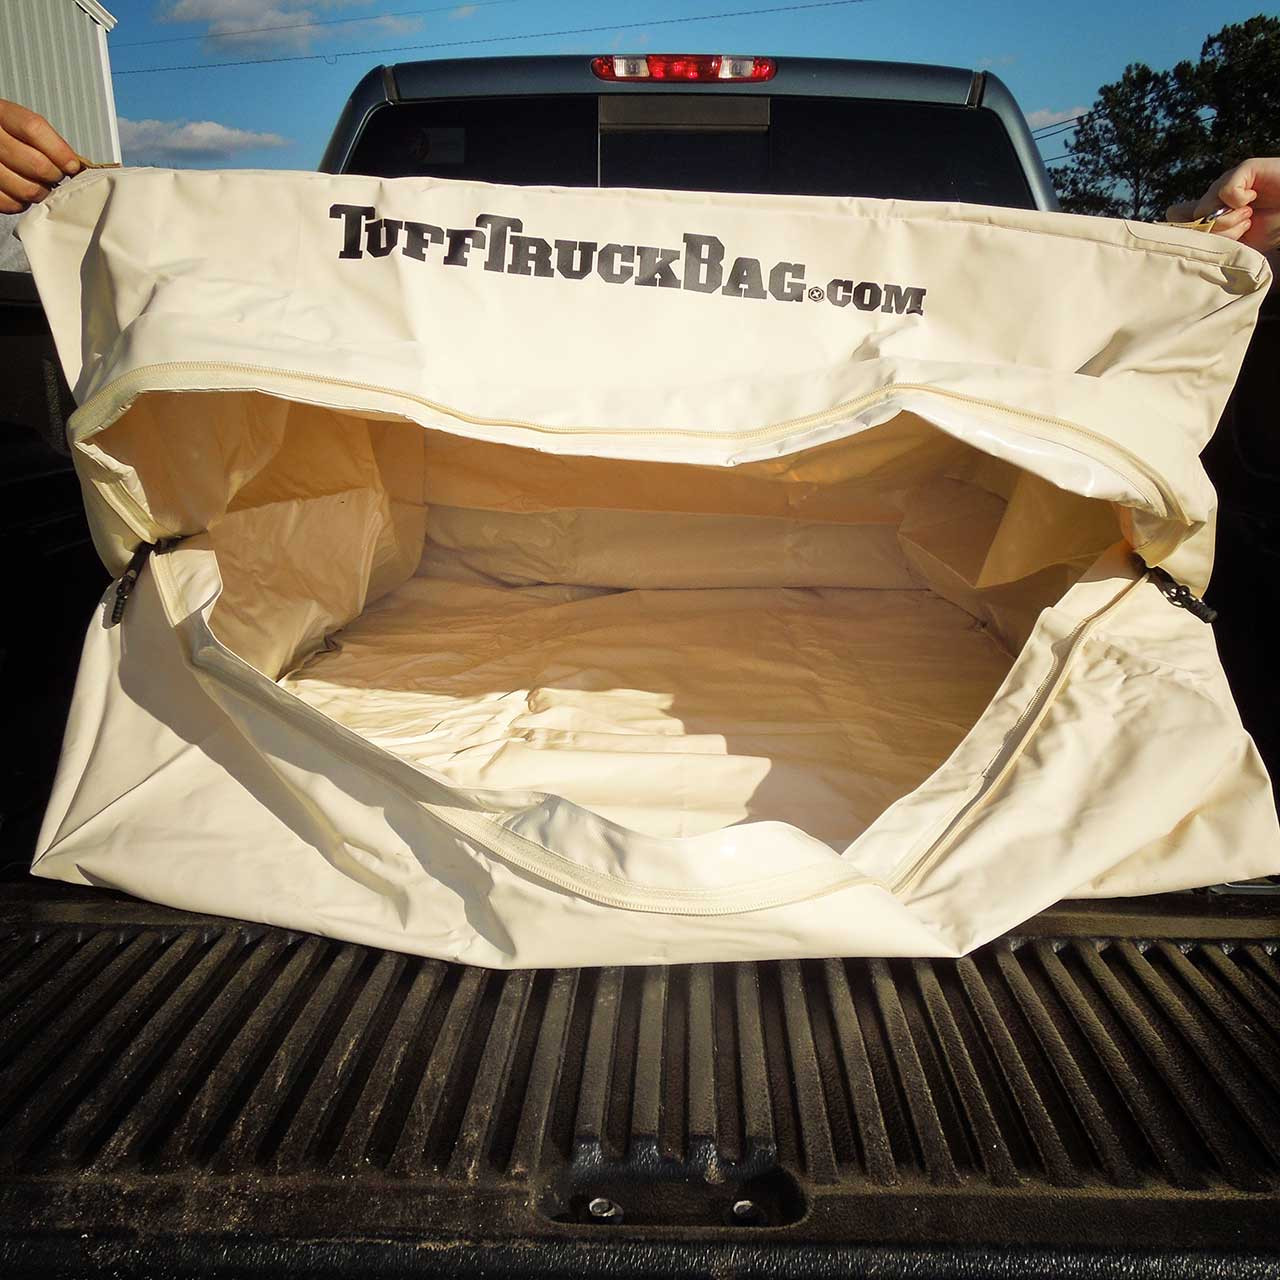 ... Back view of a waterproof Tuff Truck Bag with no cargo or luggage inside to see ... & Tan Truck Bed Storage | Collapsible Khaki Truck Bed Box | Great ...